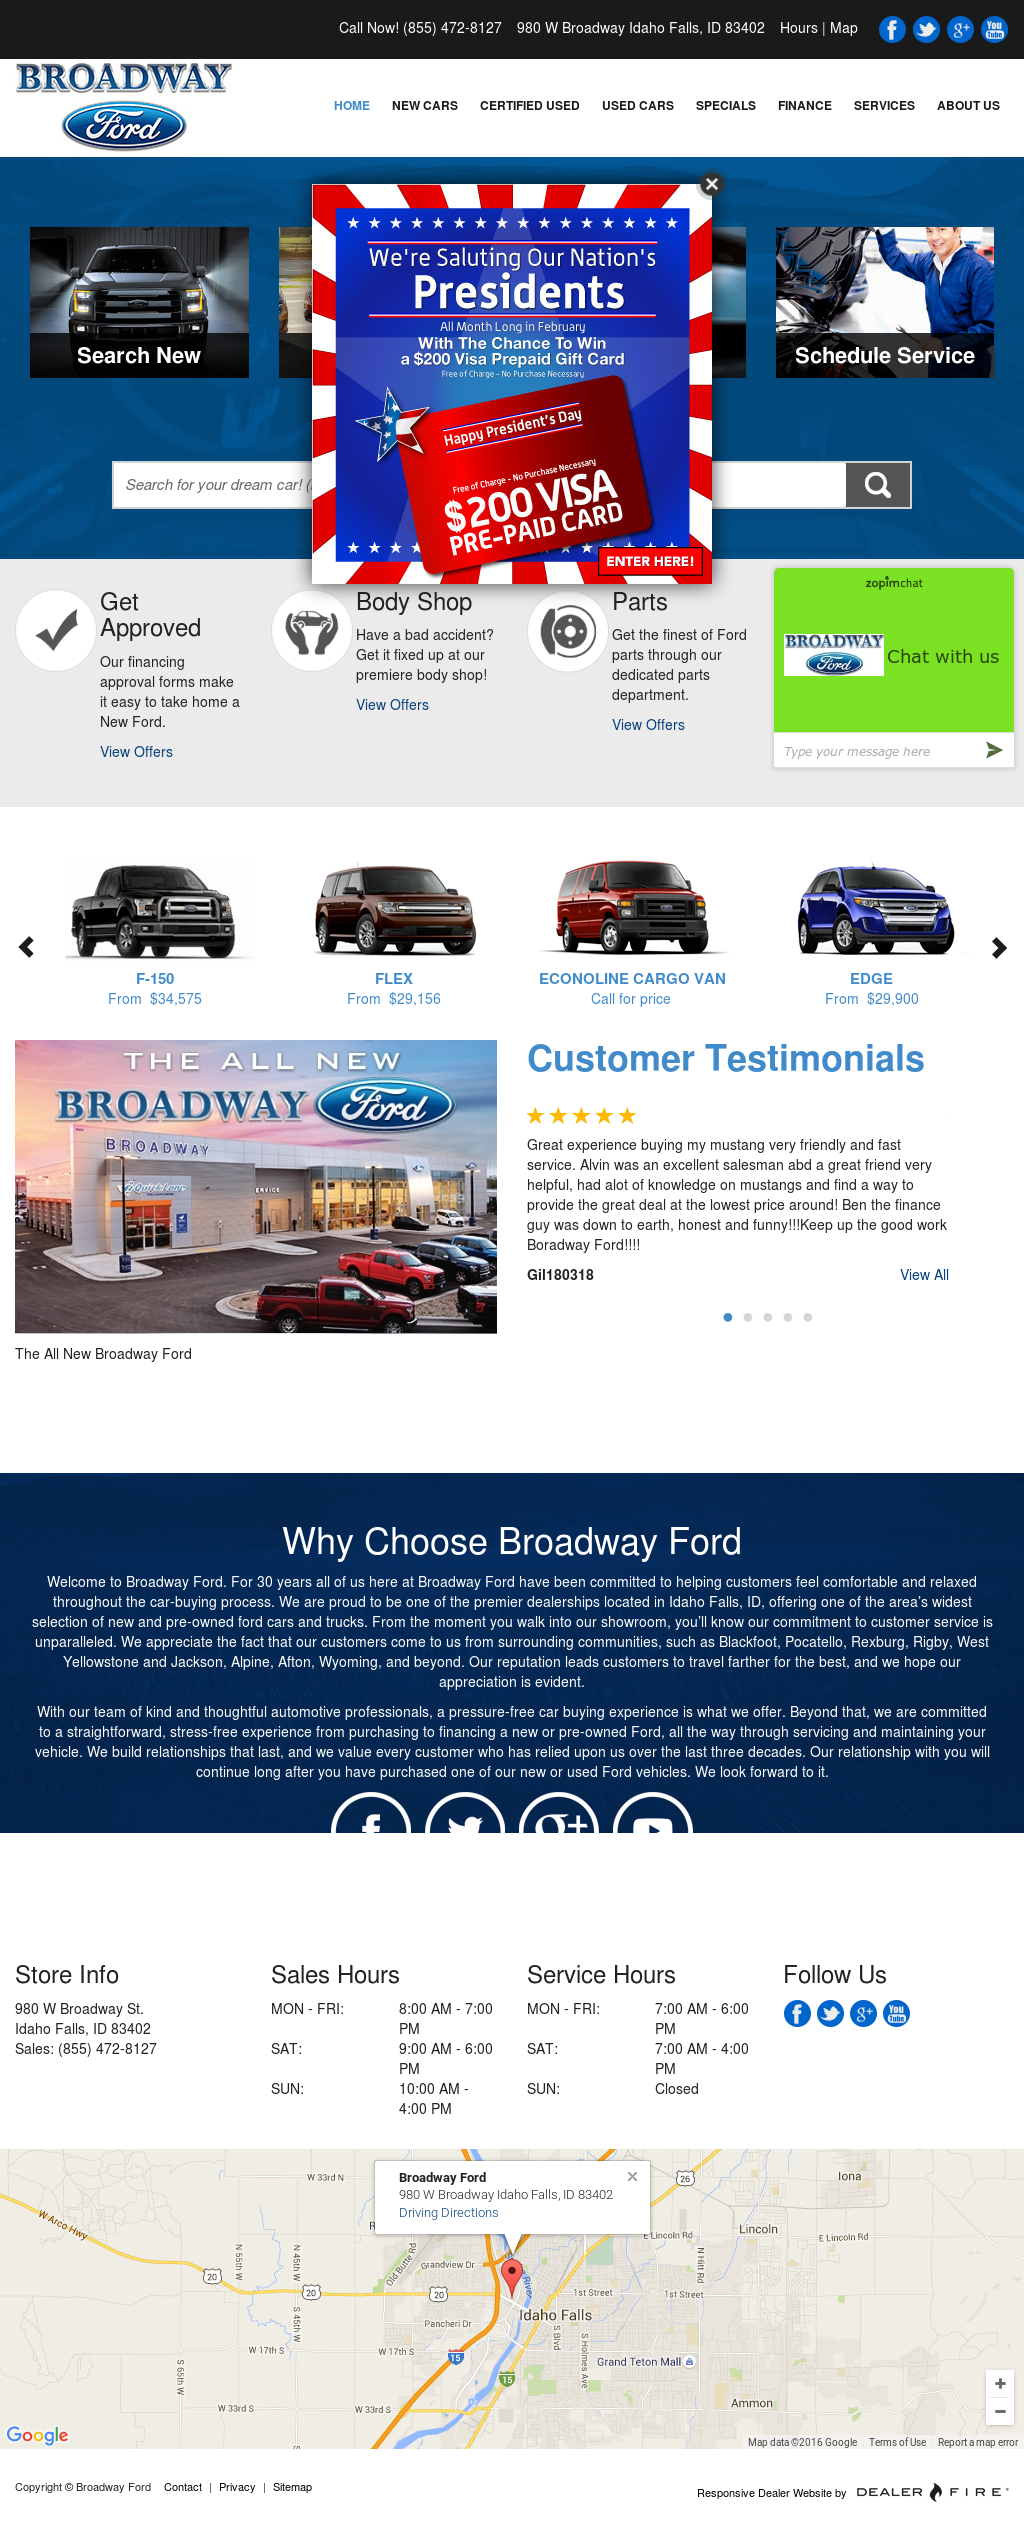 Broadway Ford Idaho Falls >> Broadway Ford Competitors Revenue And Employees Owler Company Profile